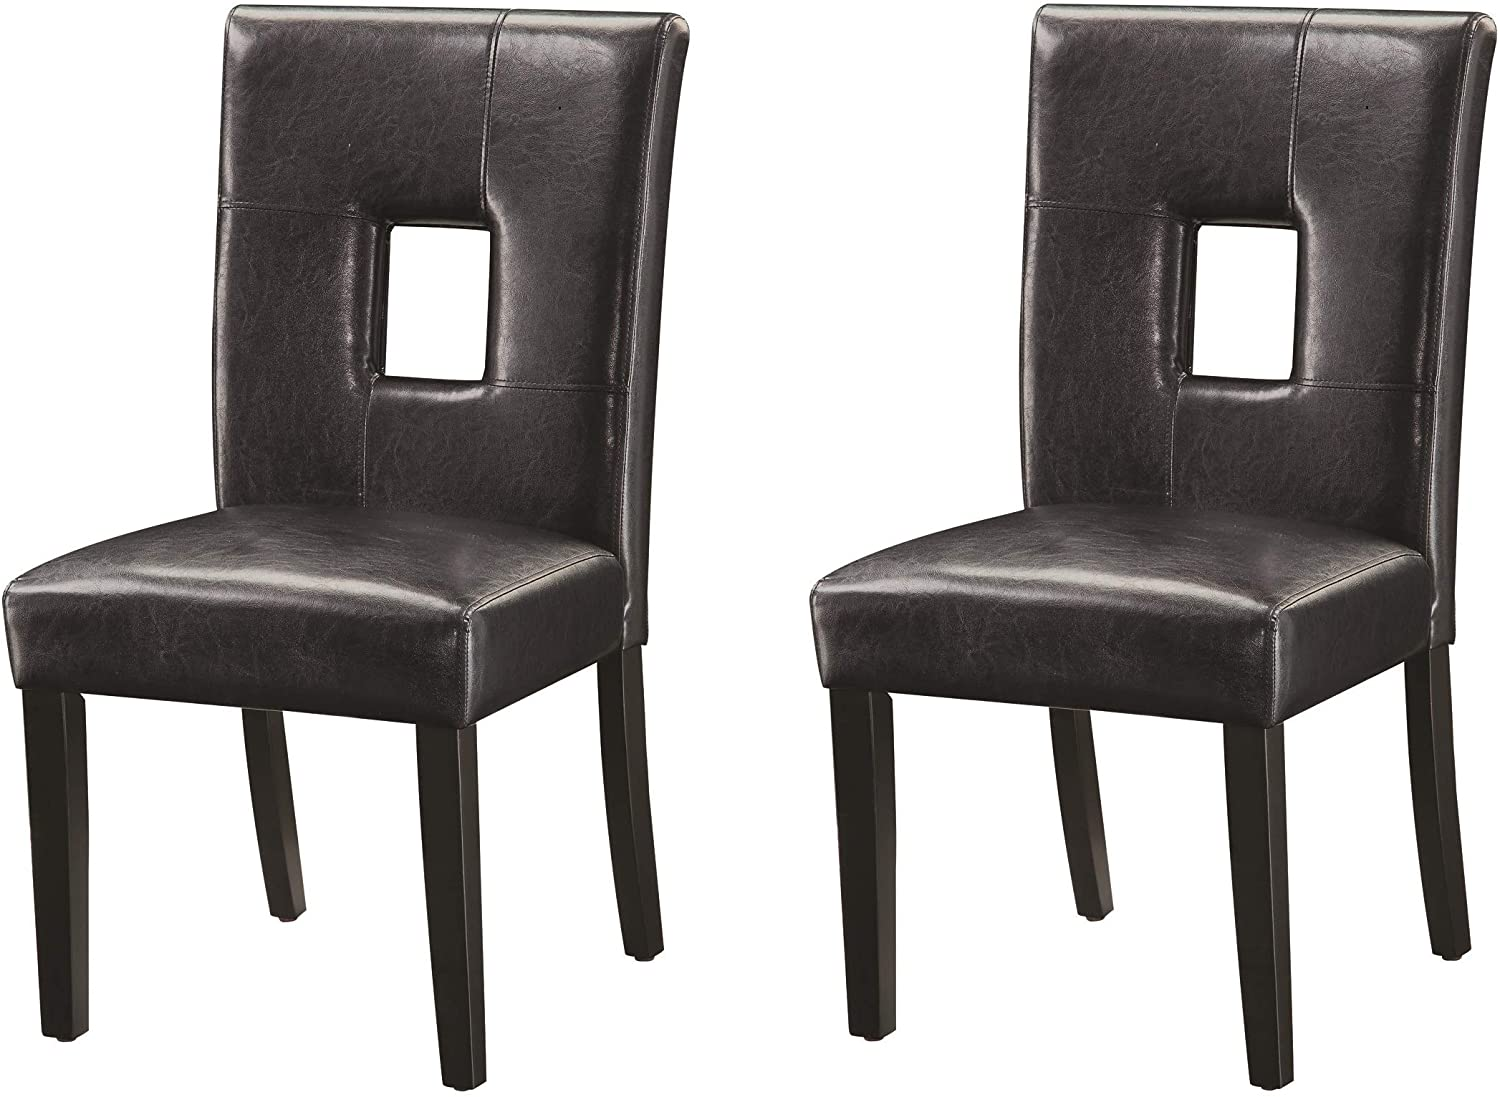 black wood upholstered dining chairs